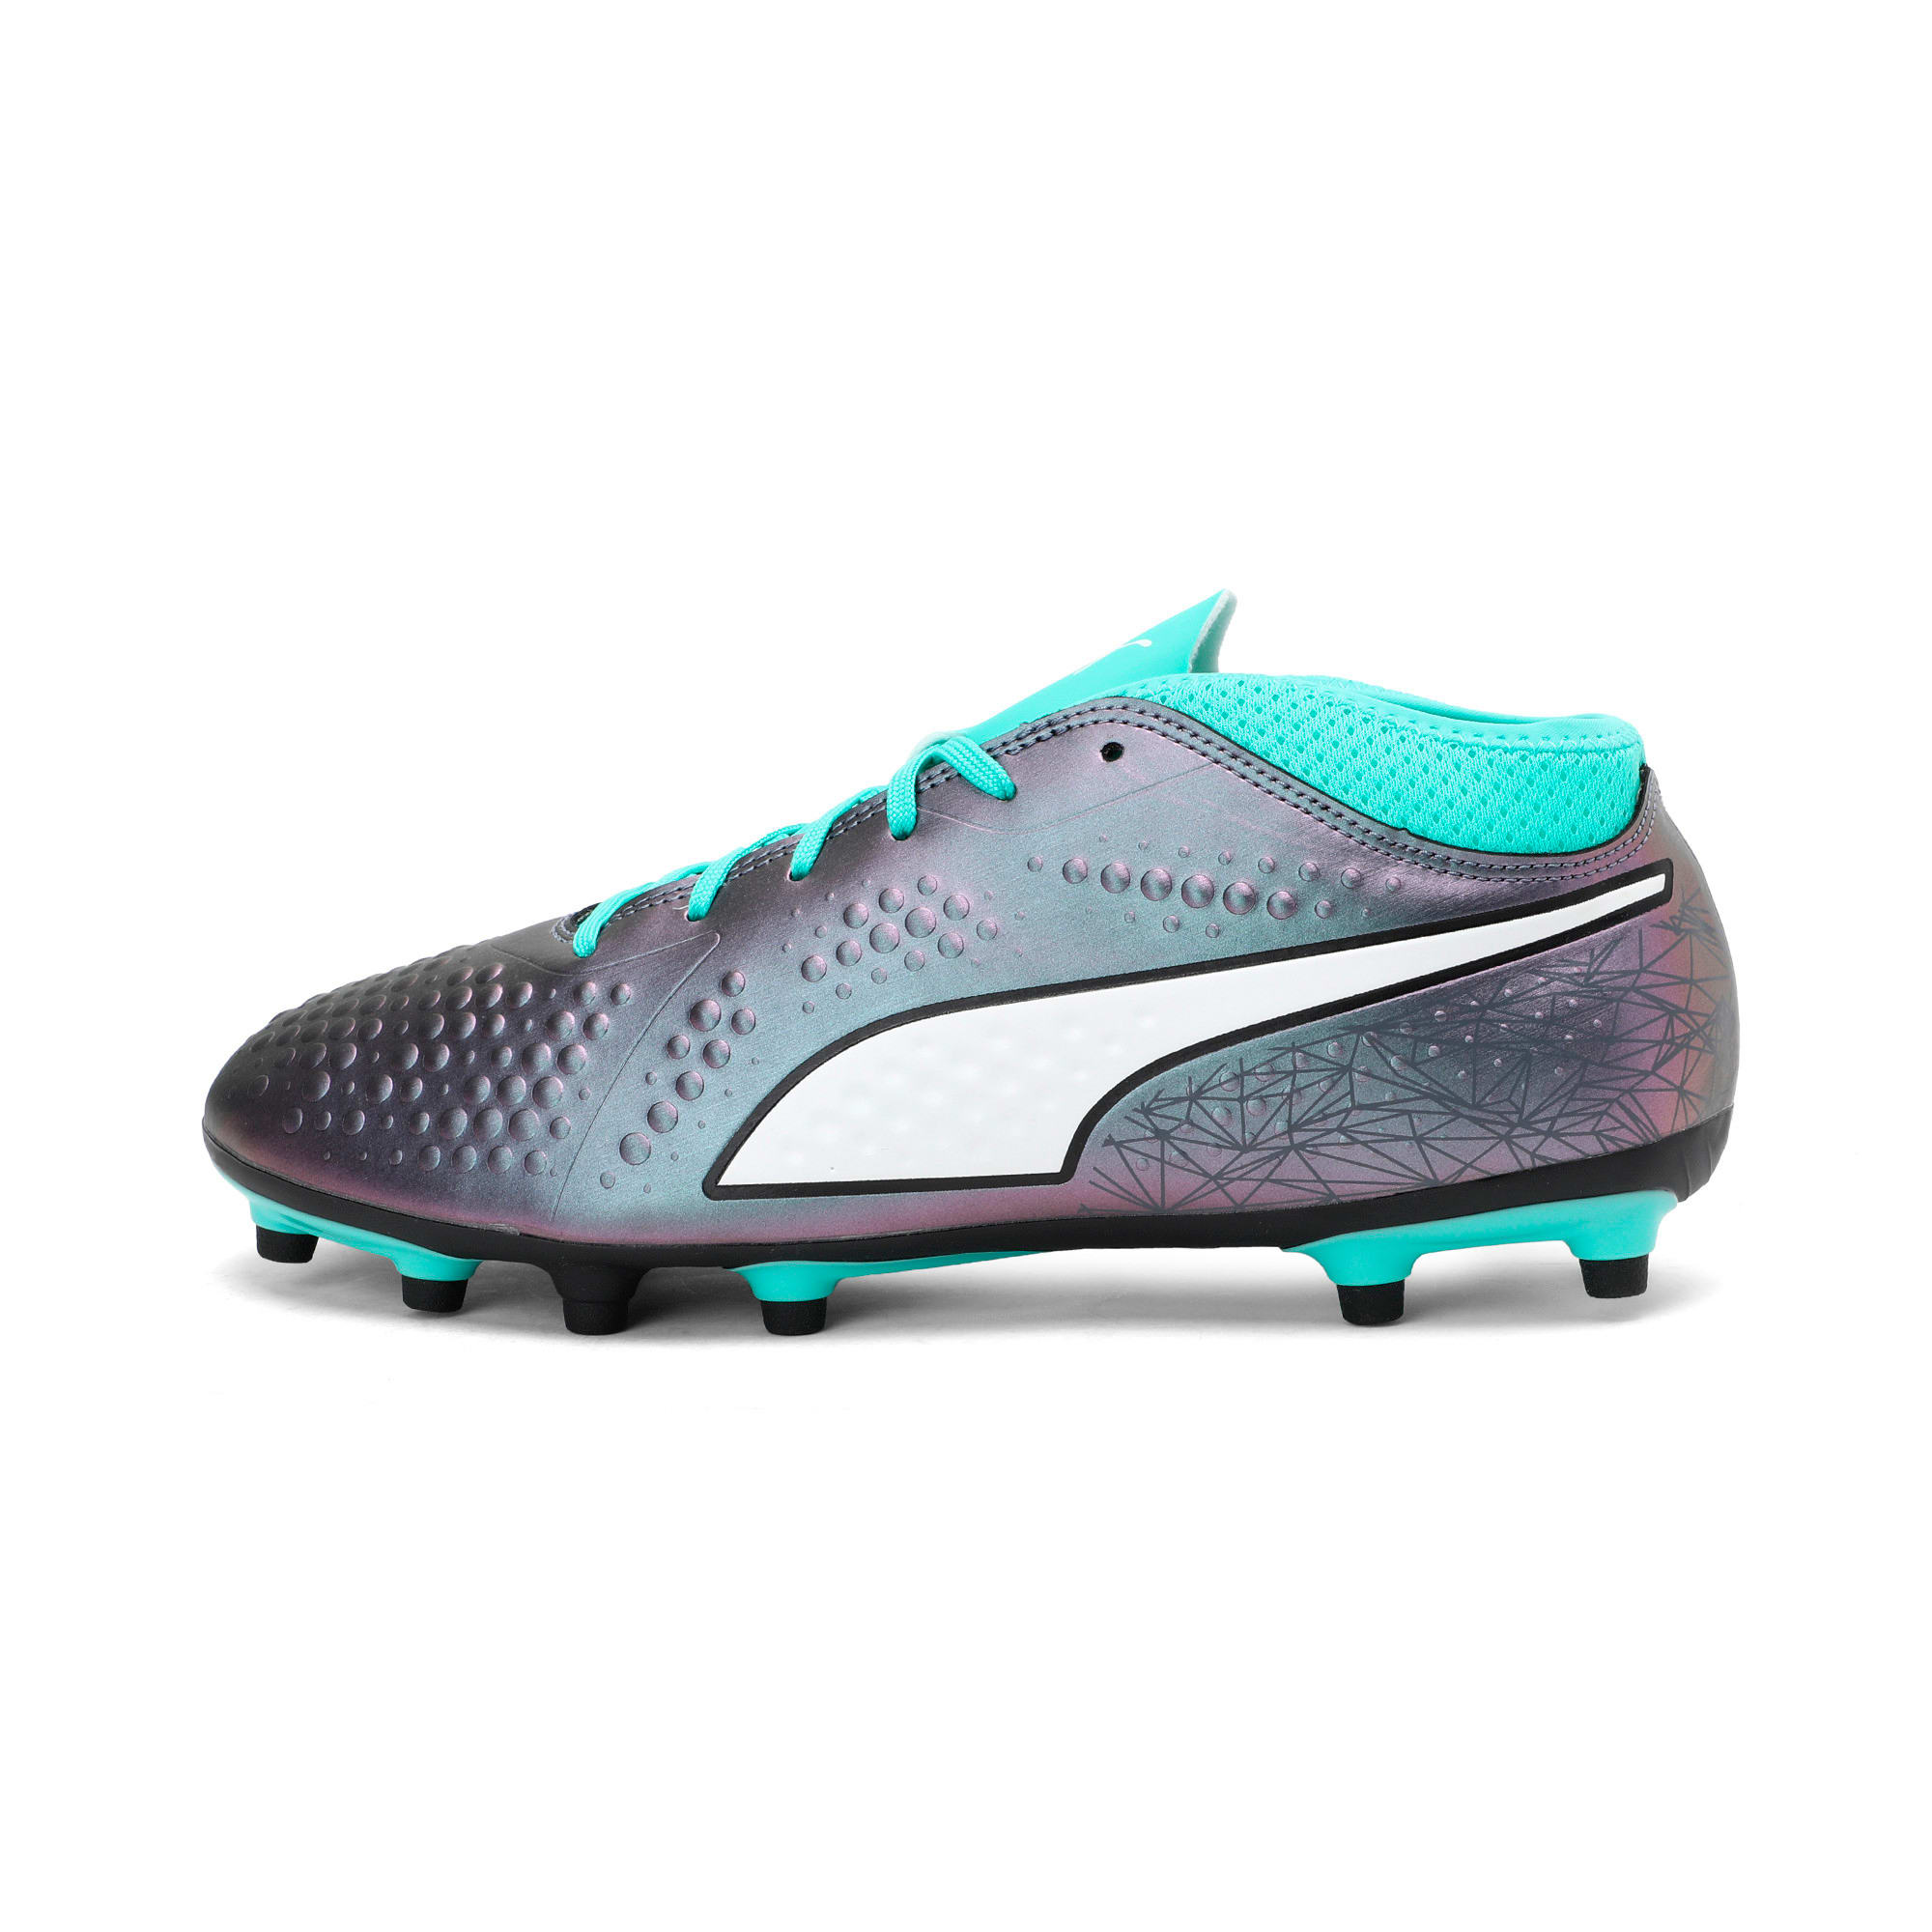 Thumbnail 1 of PUMA ONE 4 IL Syn FG Color Shift-Biscay, Col Shift-Green-White-Black, medium-IND